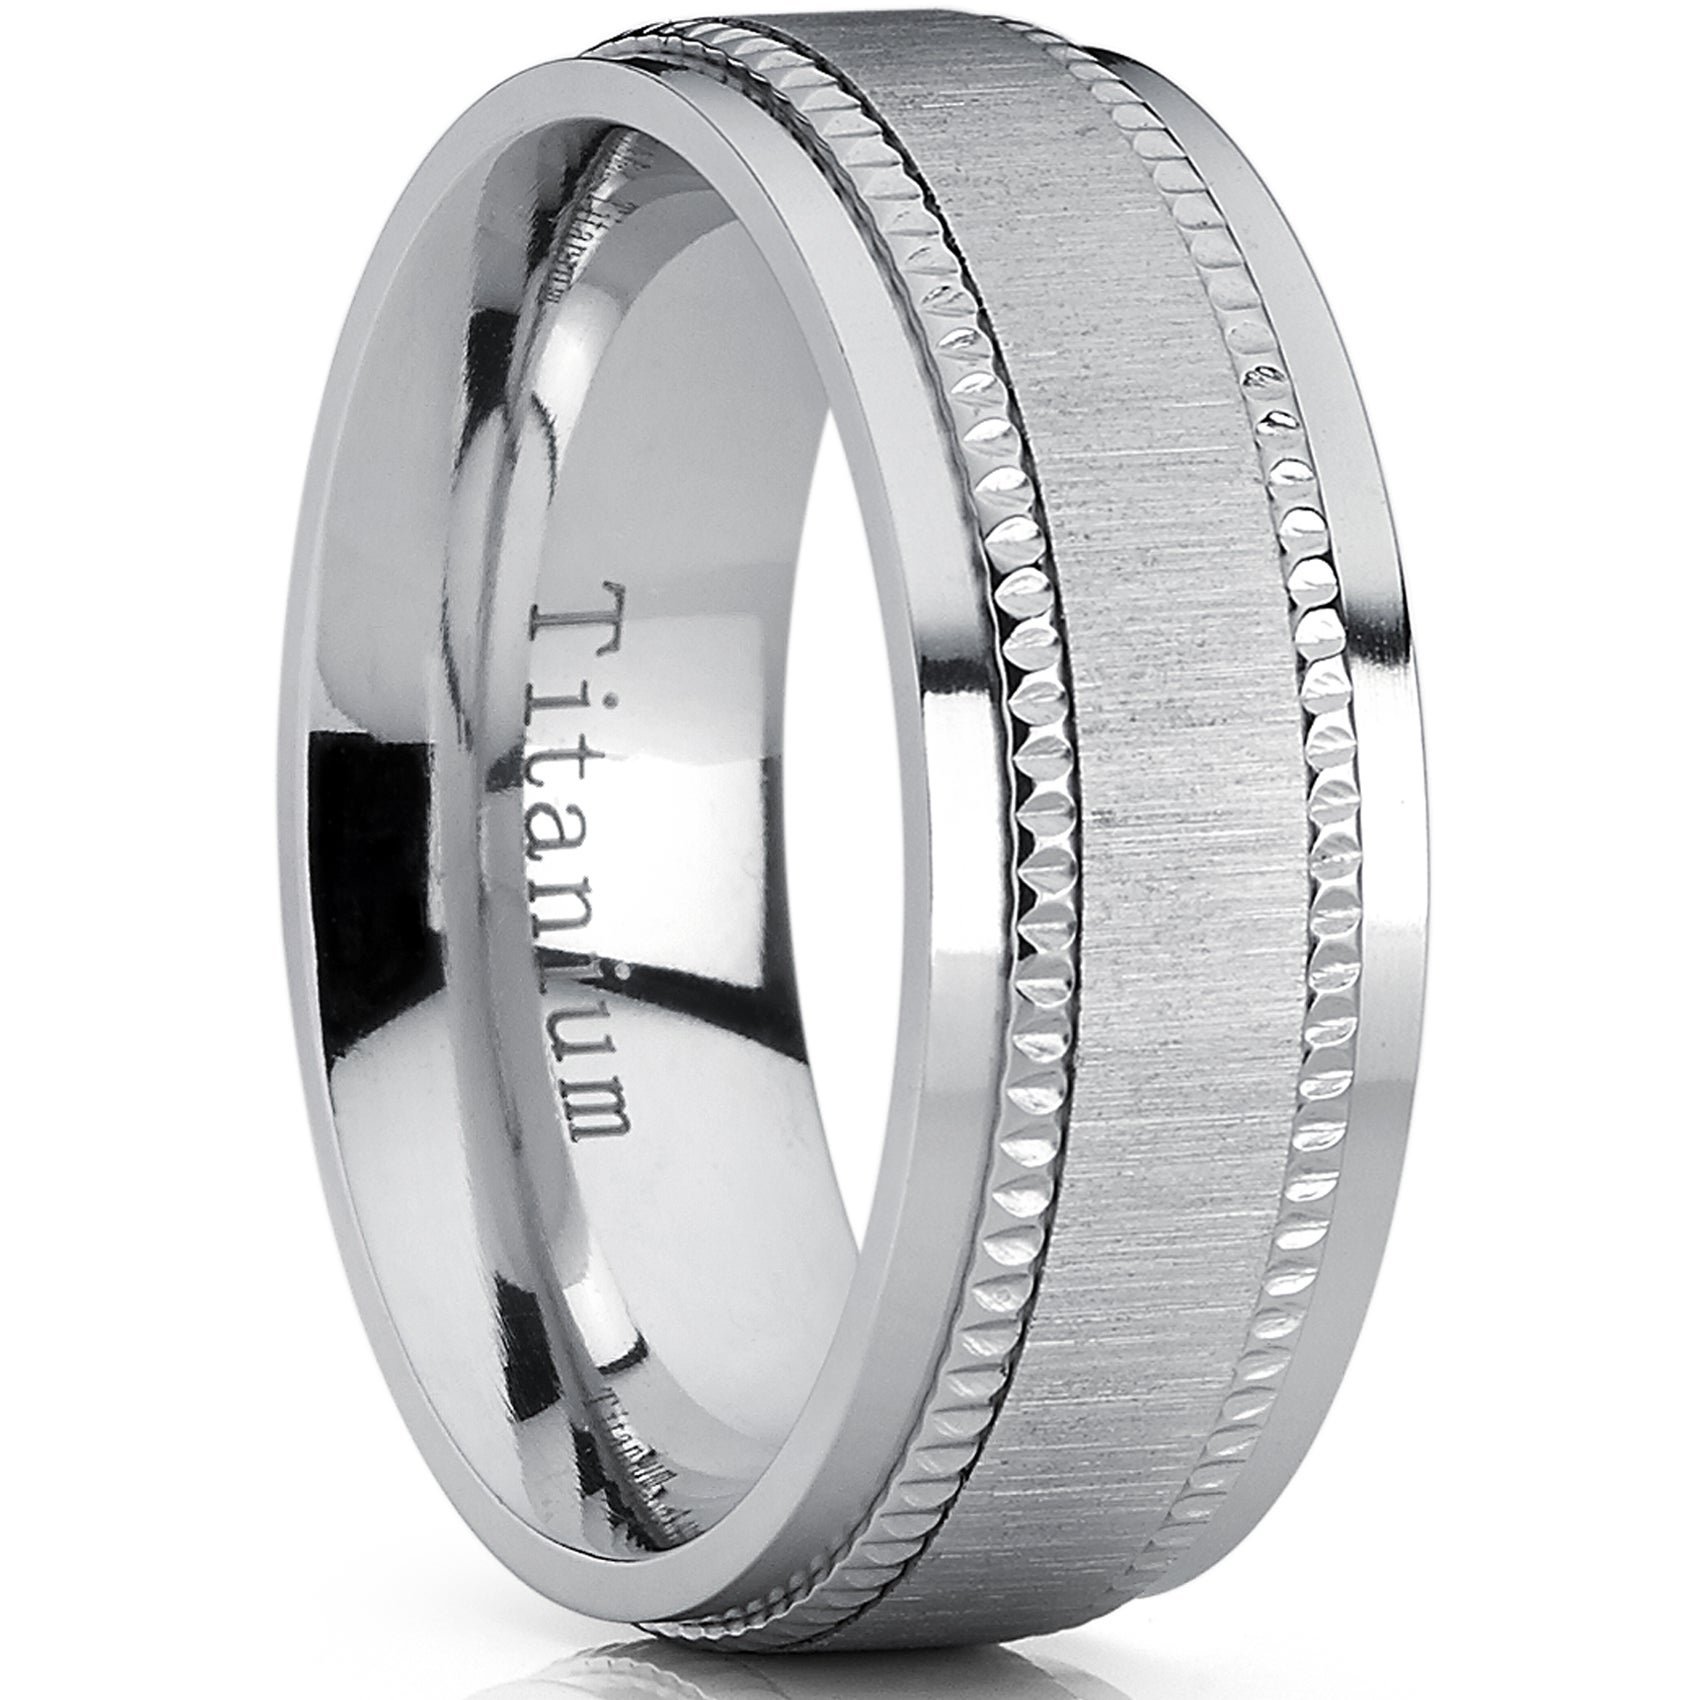 titanium design lajerrio silver men ring mens steel black jewelry chain bands s